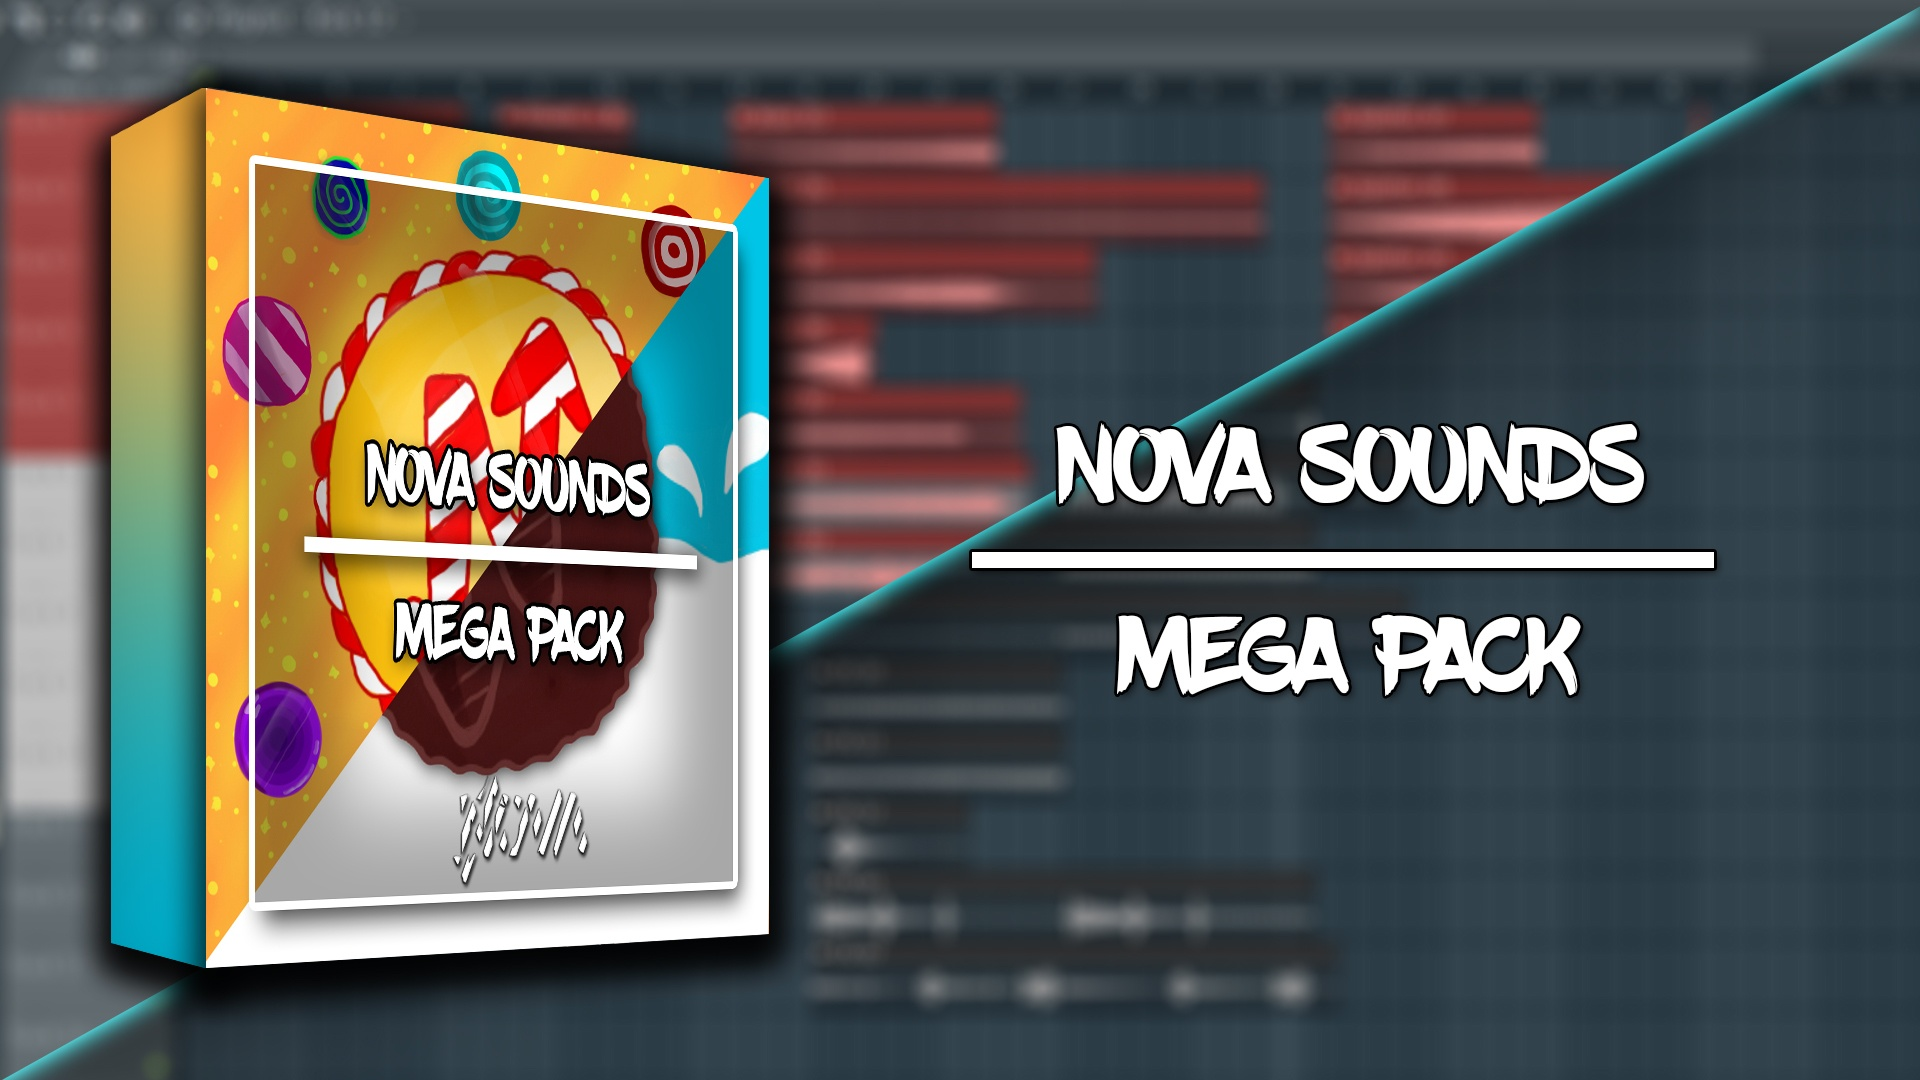 Nova Sounds Mega Pack